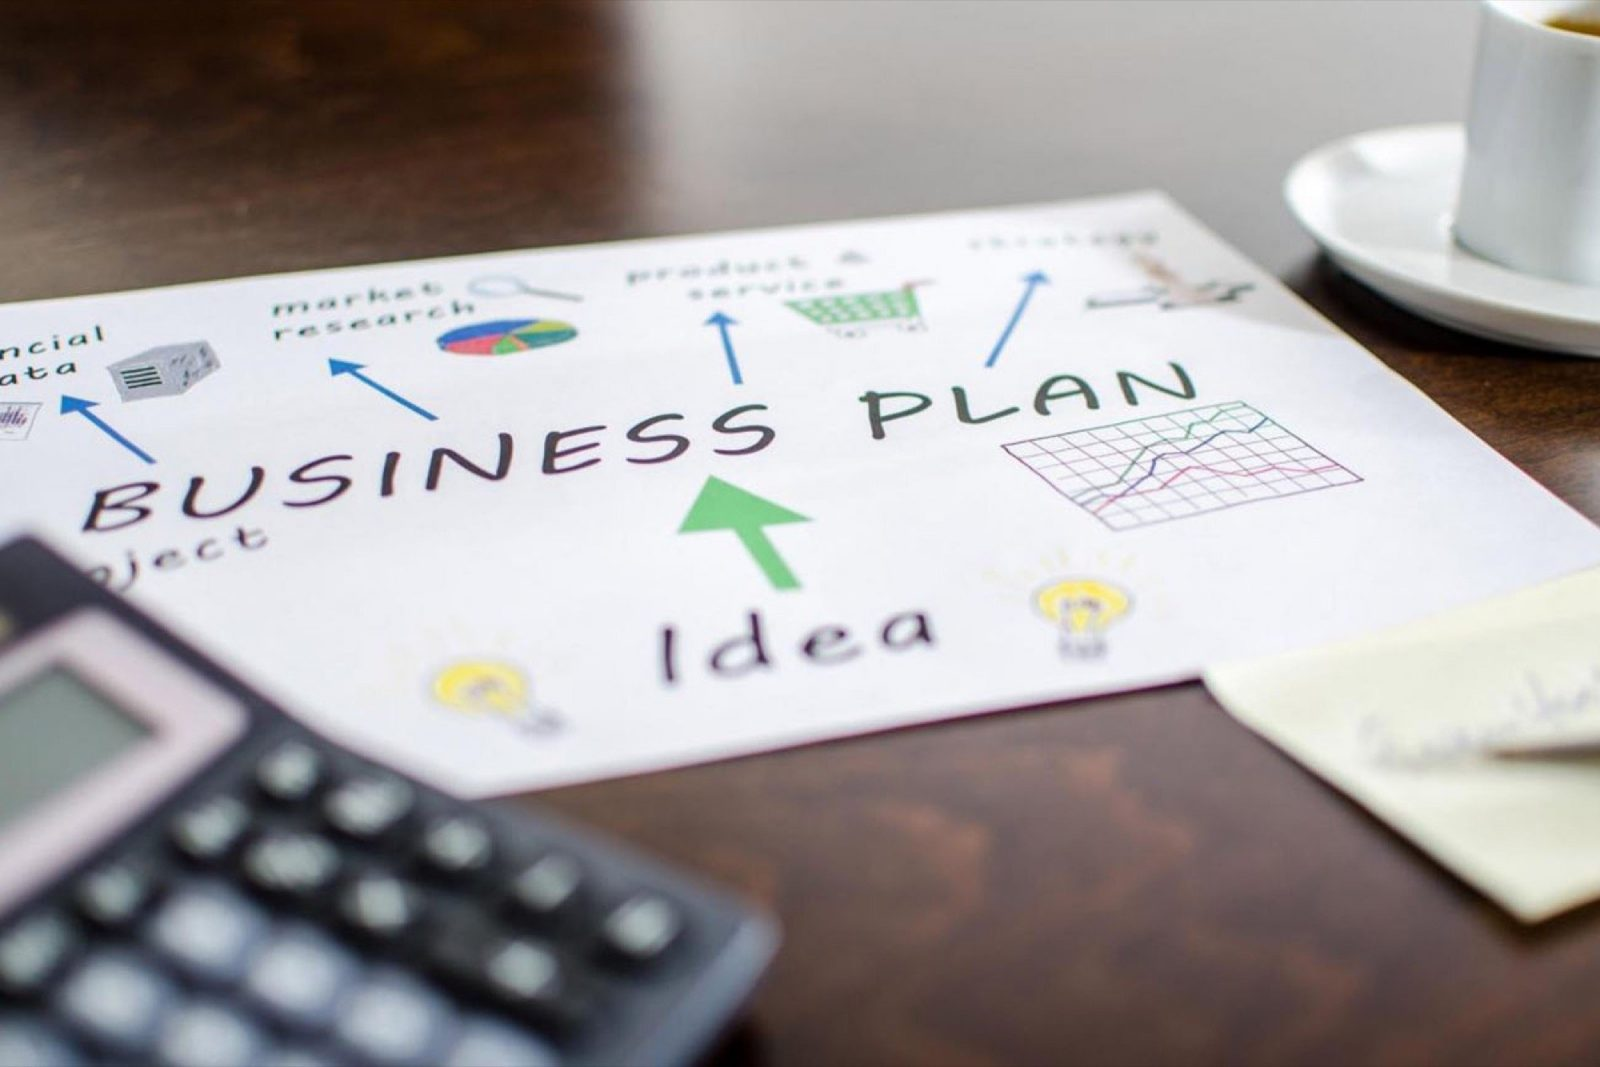 Common Mistakes in Business Plans